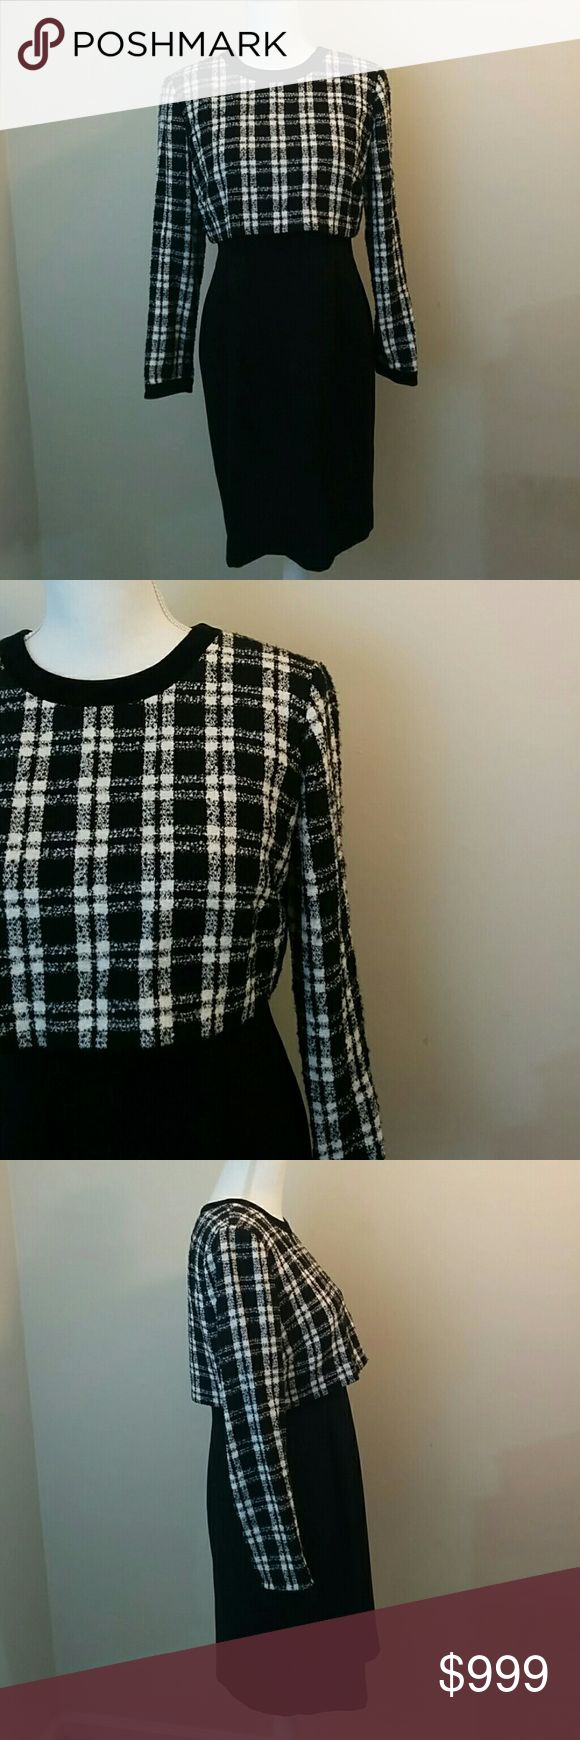 "Vintage Donna Morgan Check Layered Dress Vintage Donna Morgan dress. Long sleeves. Black and White check plaid ""top"" over black sheath/pencil dress. Will be the perfect dress to wear in Fall and Winter! Modest, but form flattering. Donna Morgan Dresses Midi"